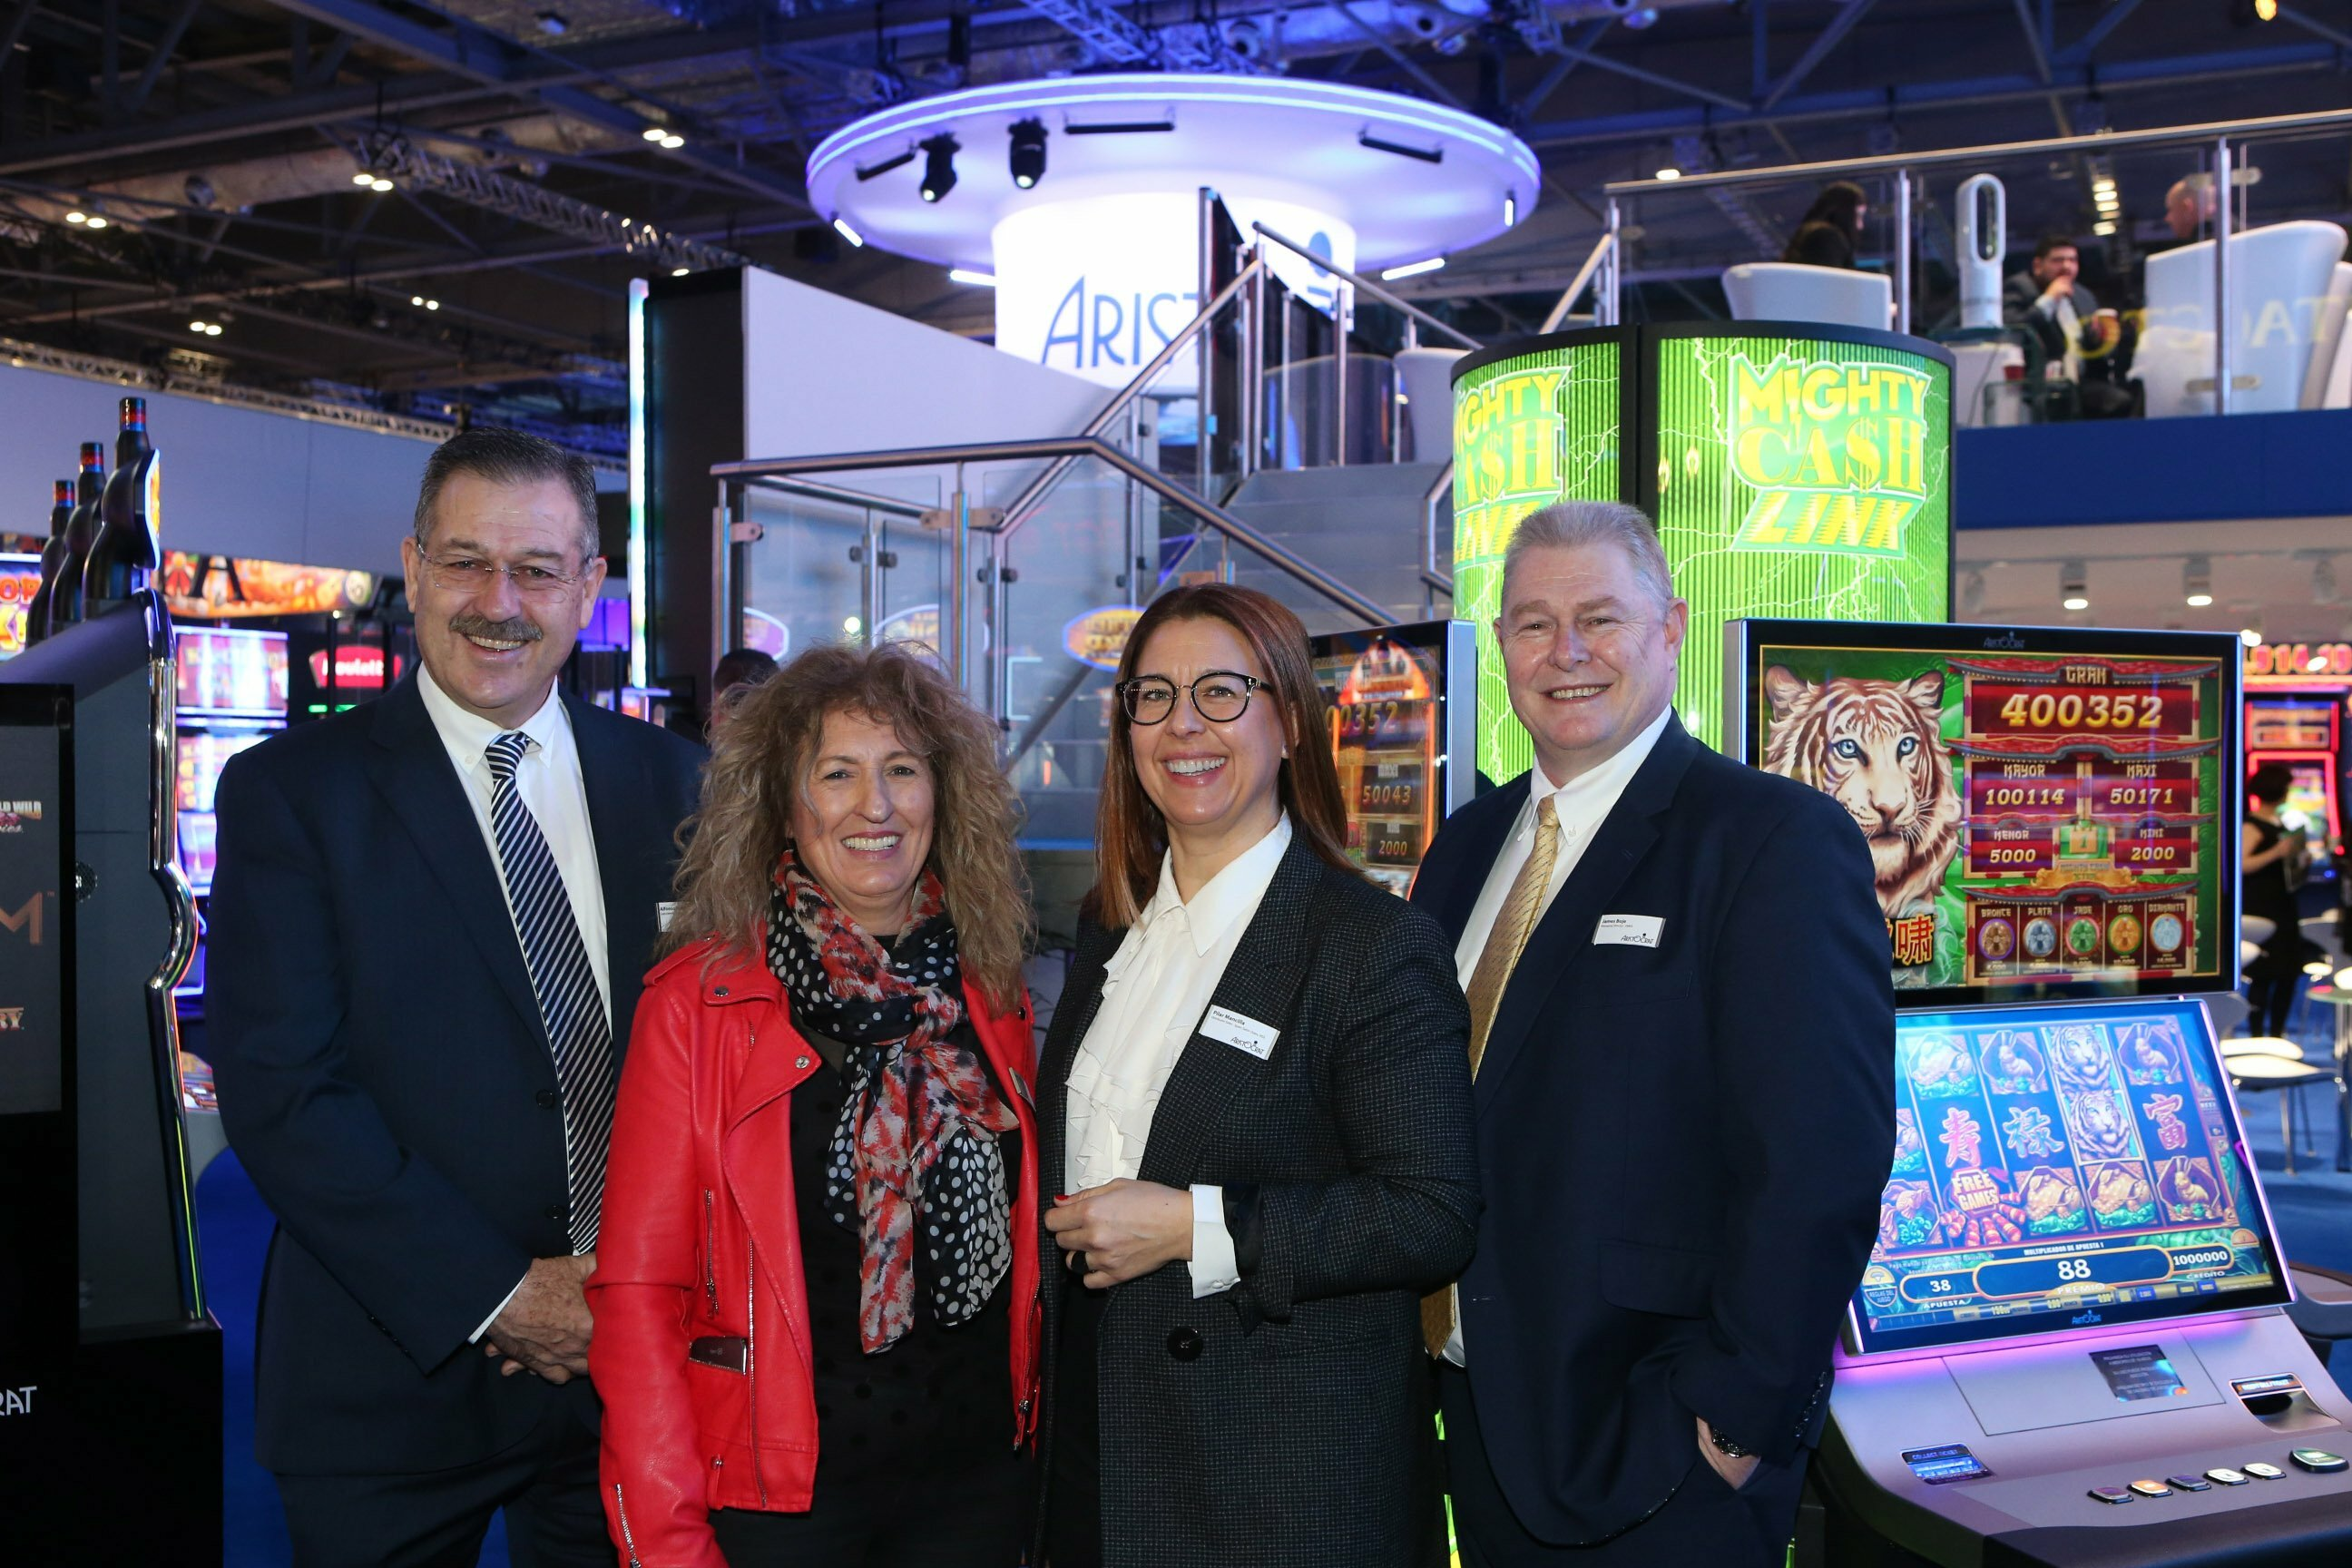 Aristocrat Signs Distribution Deal With Grupo VD